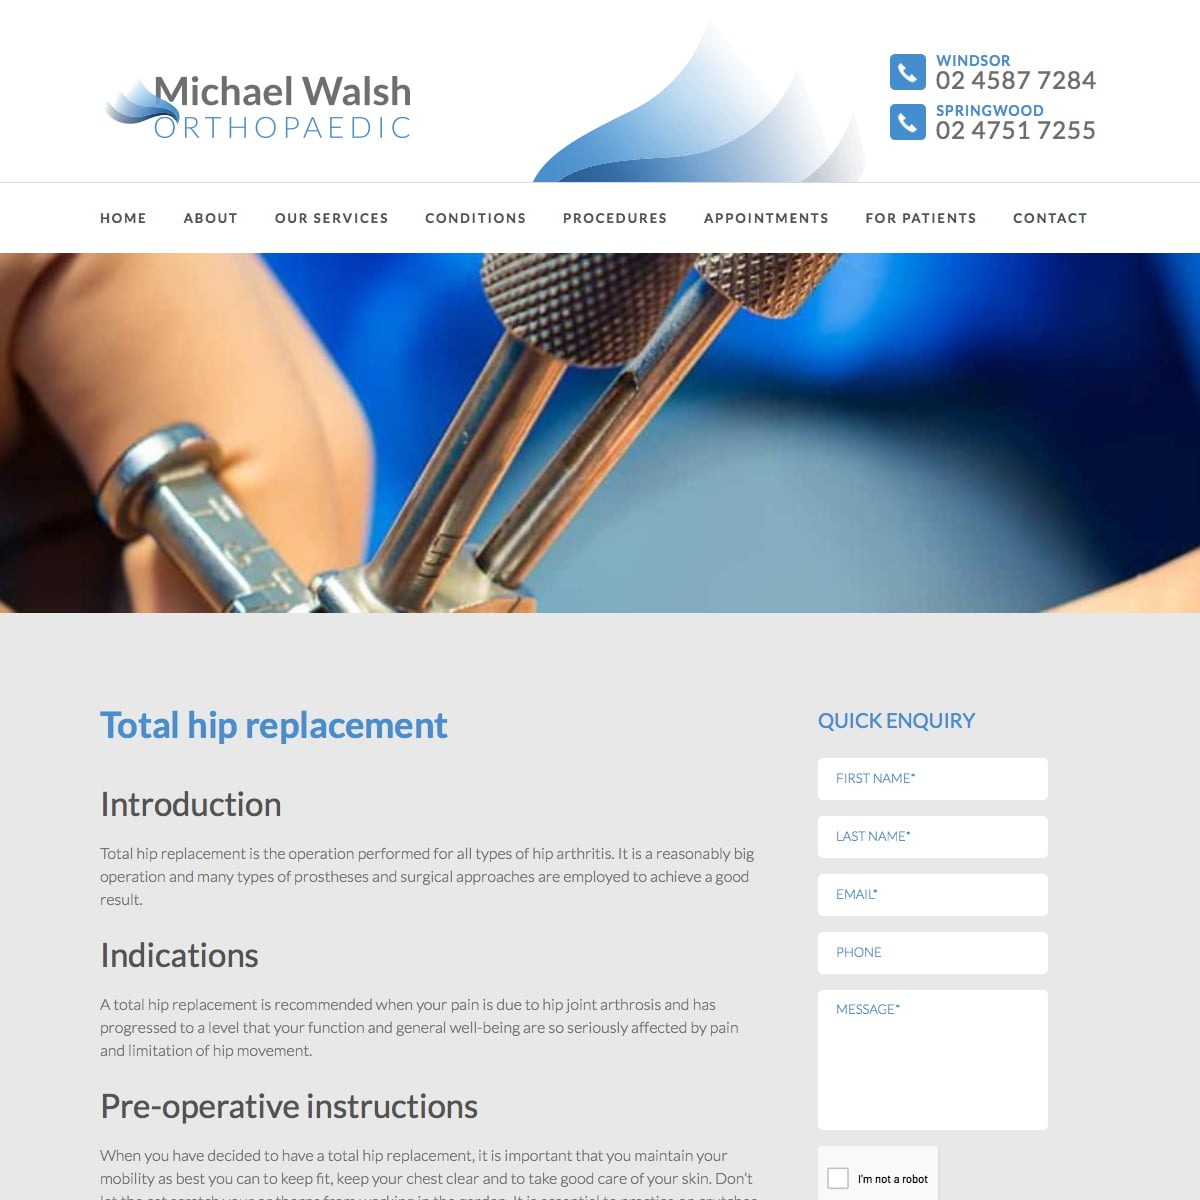 Michael Walsh Orthopaedic - Total hip replacement